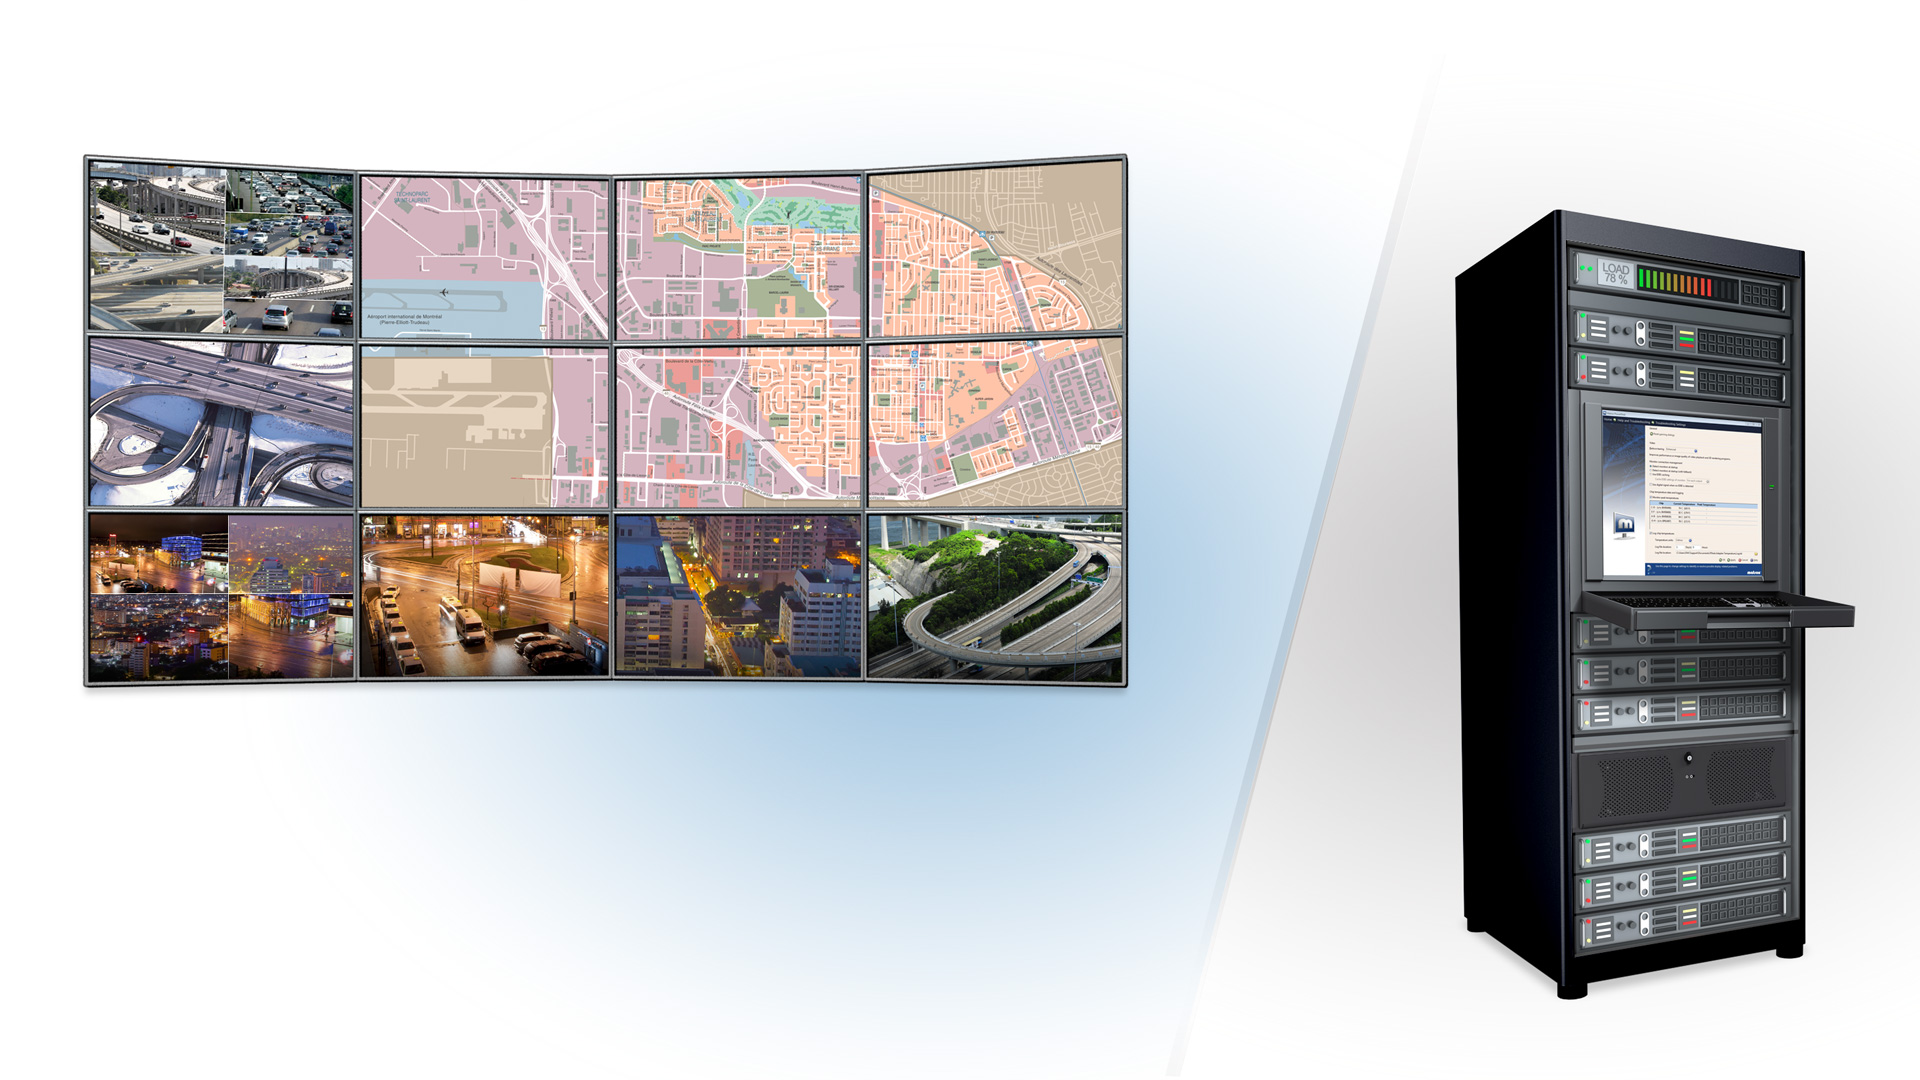 Matrox P690 graphics cards used alongside Mura™ MPX-based video wall controllers to power up to four independent console displays.